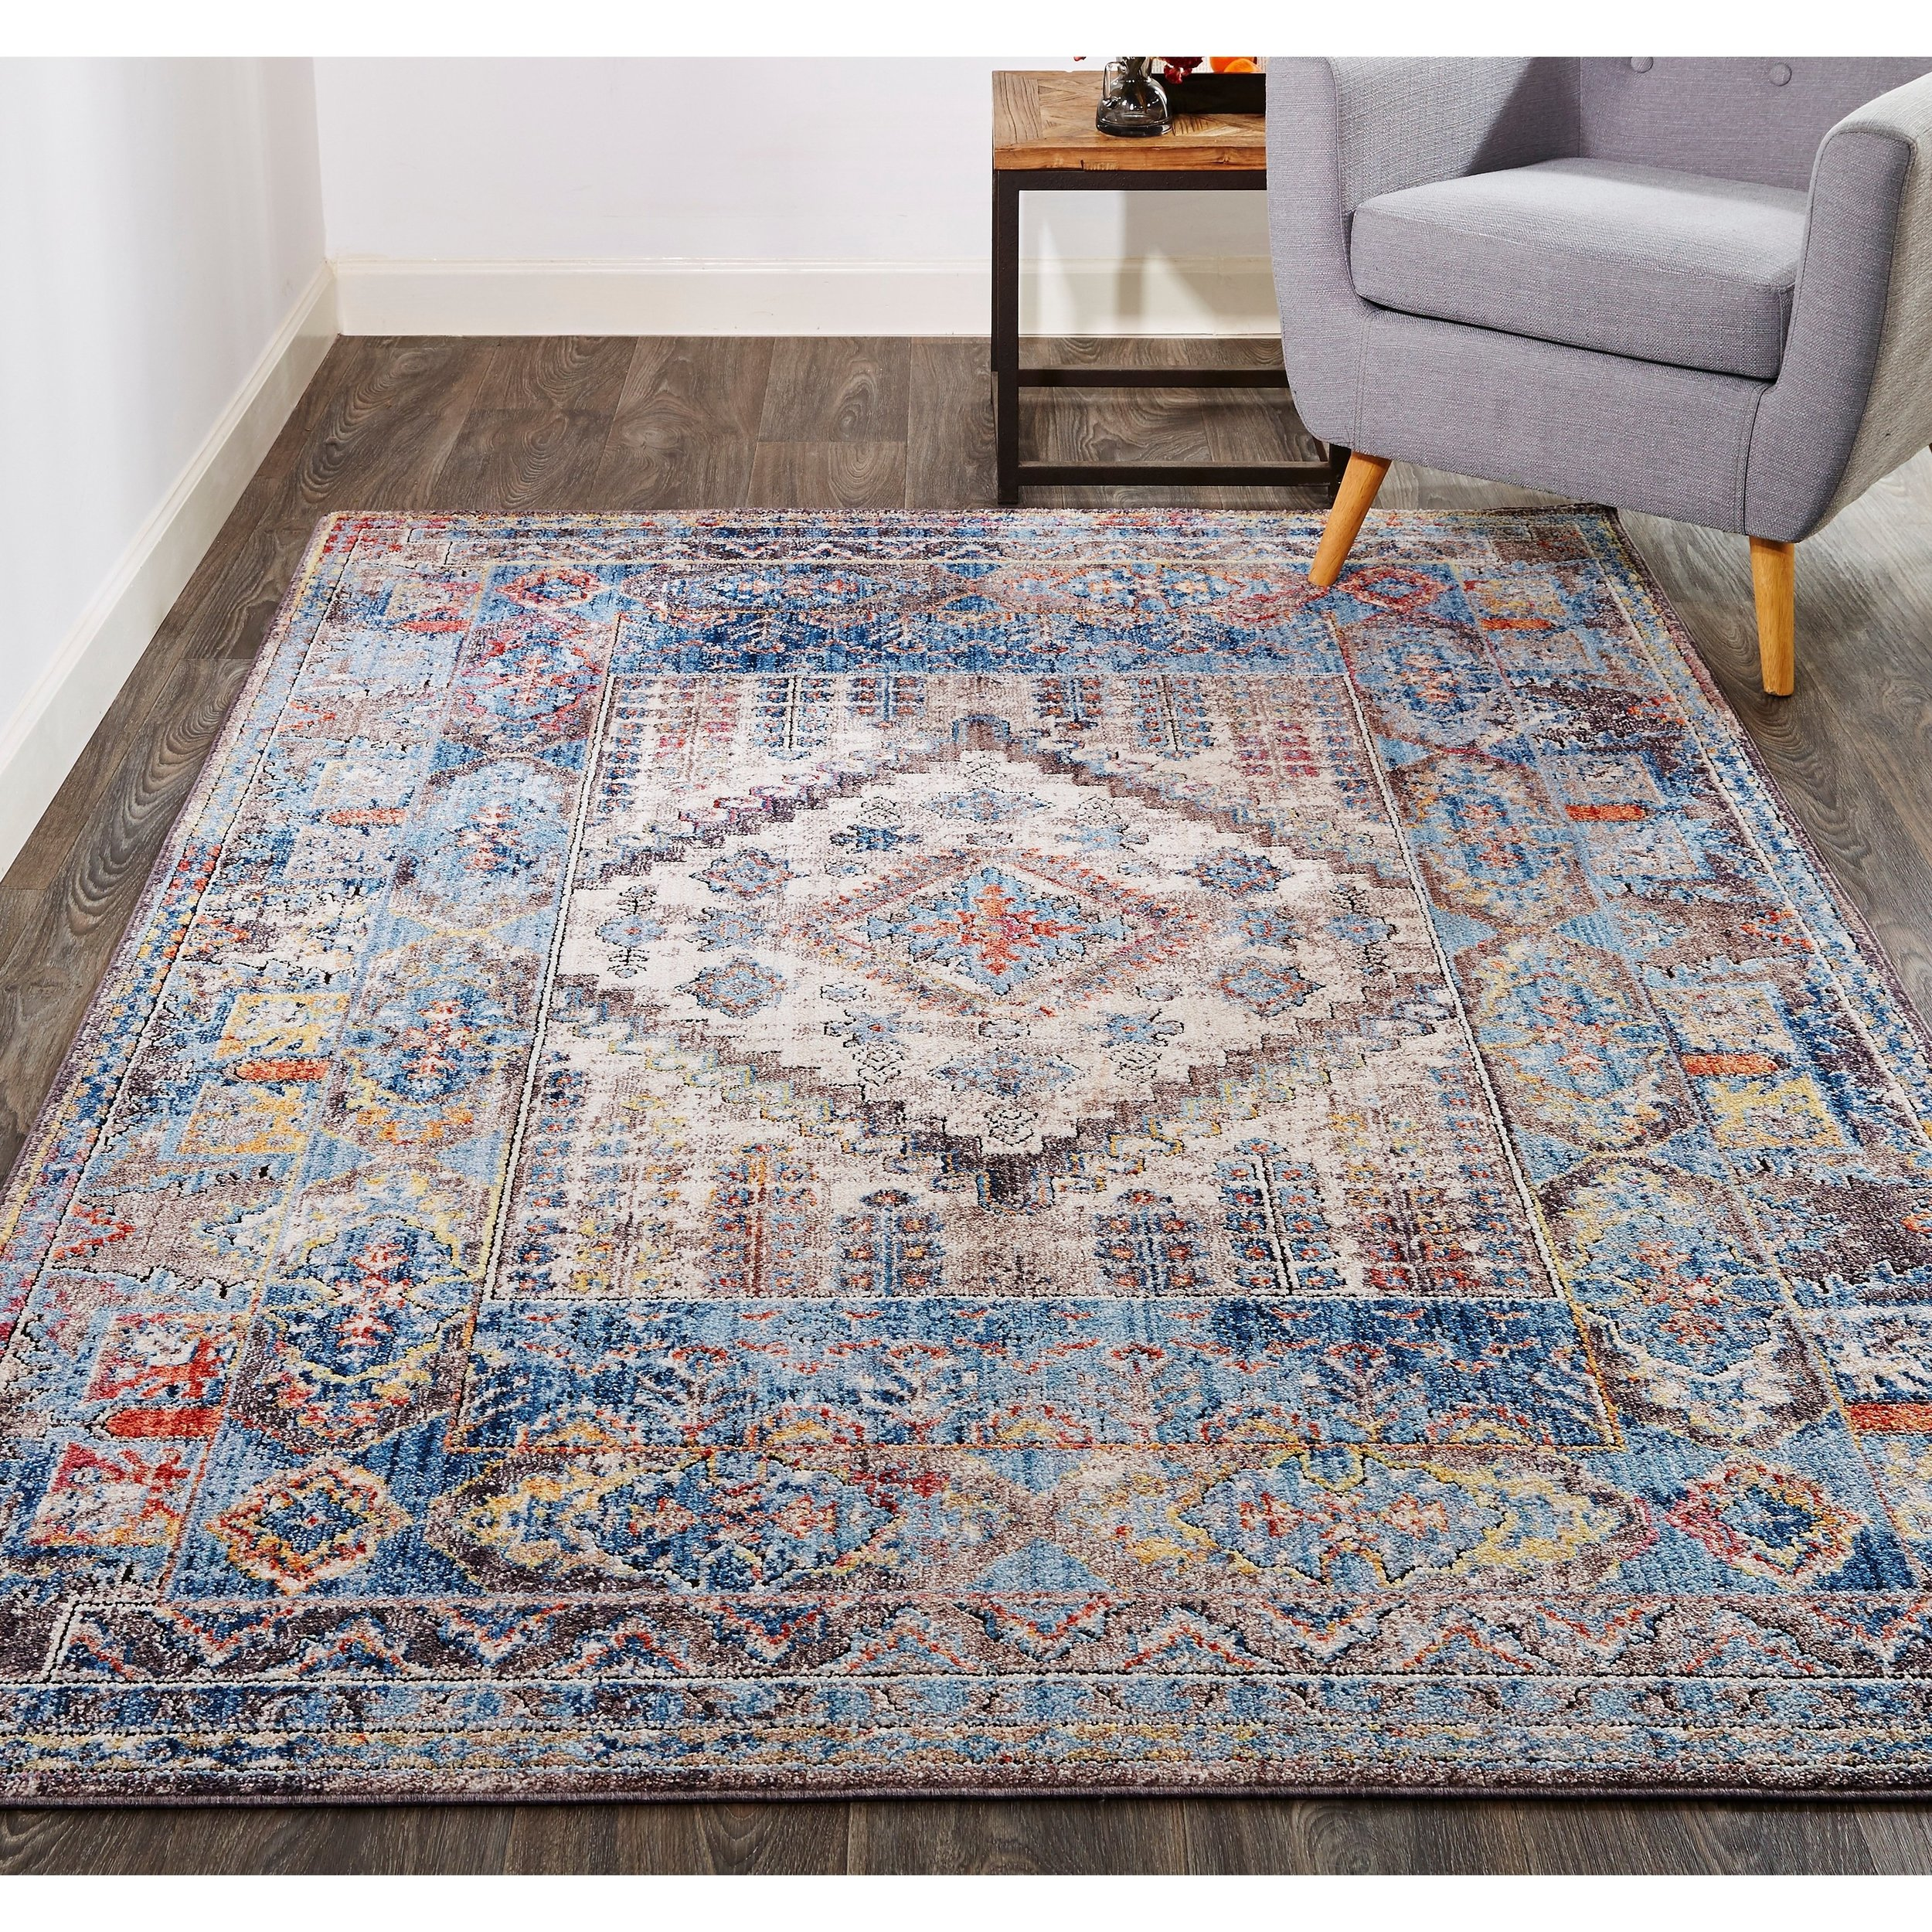 THE ARMANT RUG - A dazzling diamond medallion enlivens this traditional ornamental pattern as soothing cerulean and dramatic rust accent inviting ivory. The approachable color palette instantly transforms bohemian, eclectic, global and transitional spaces while the pure, stain-resistant polyester pile offers added durability for high traffic spaces.